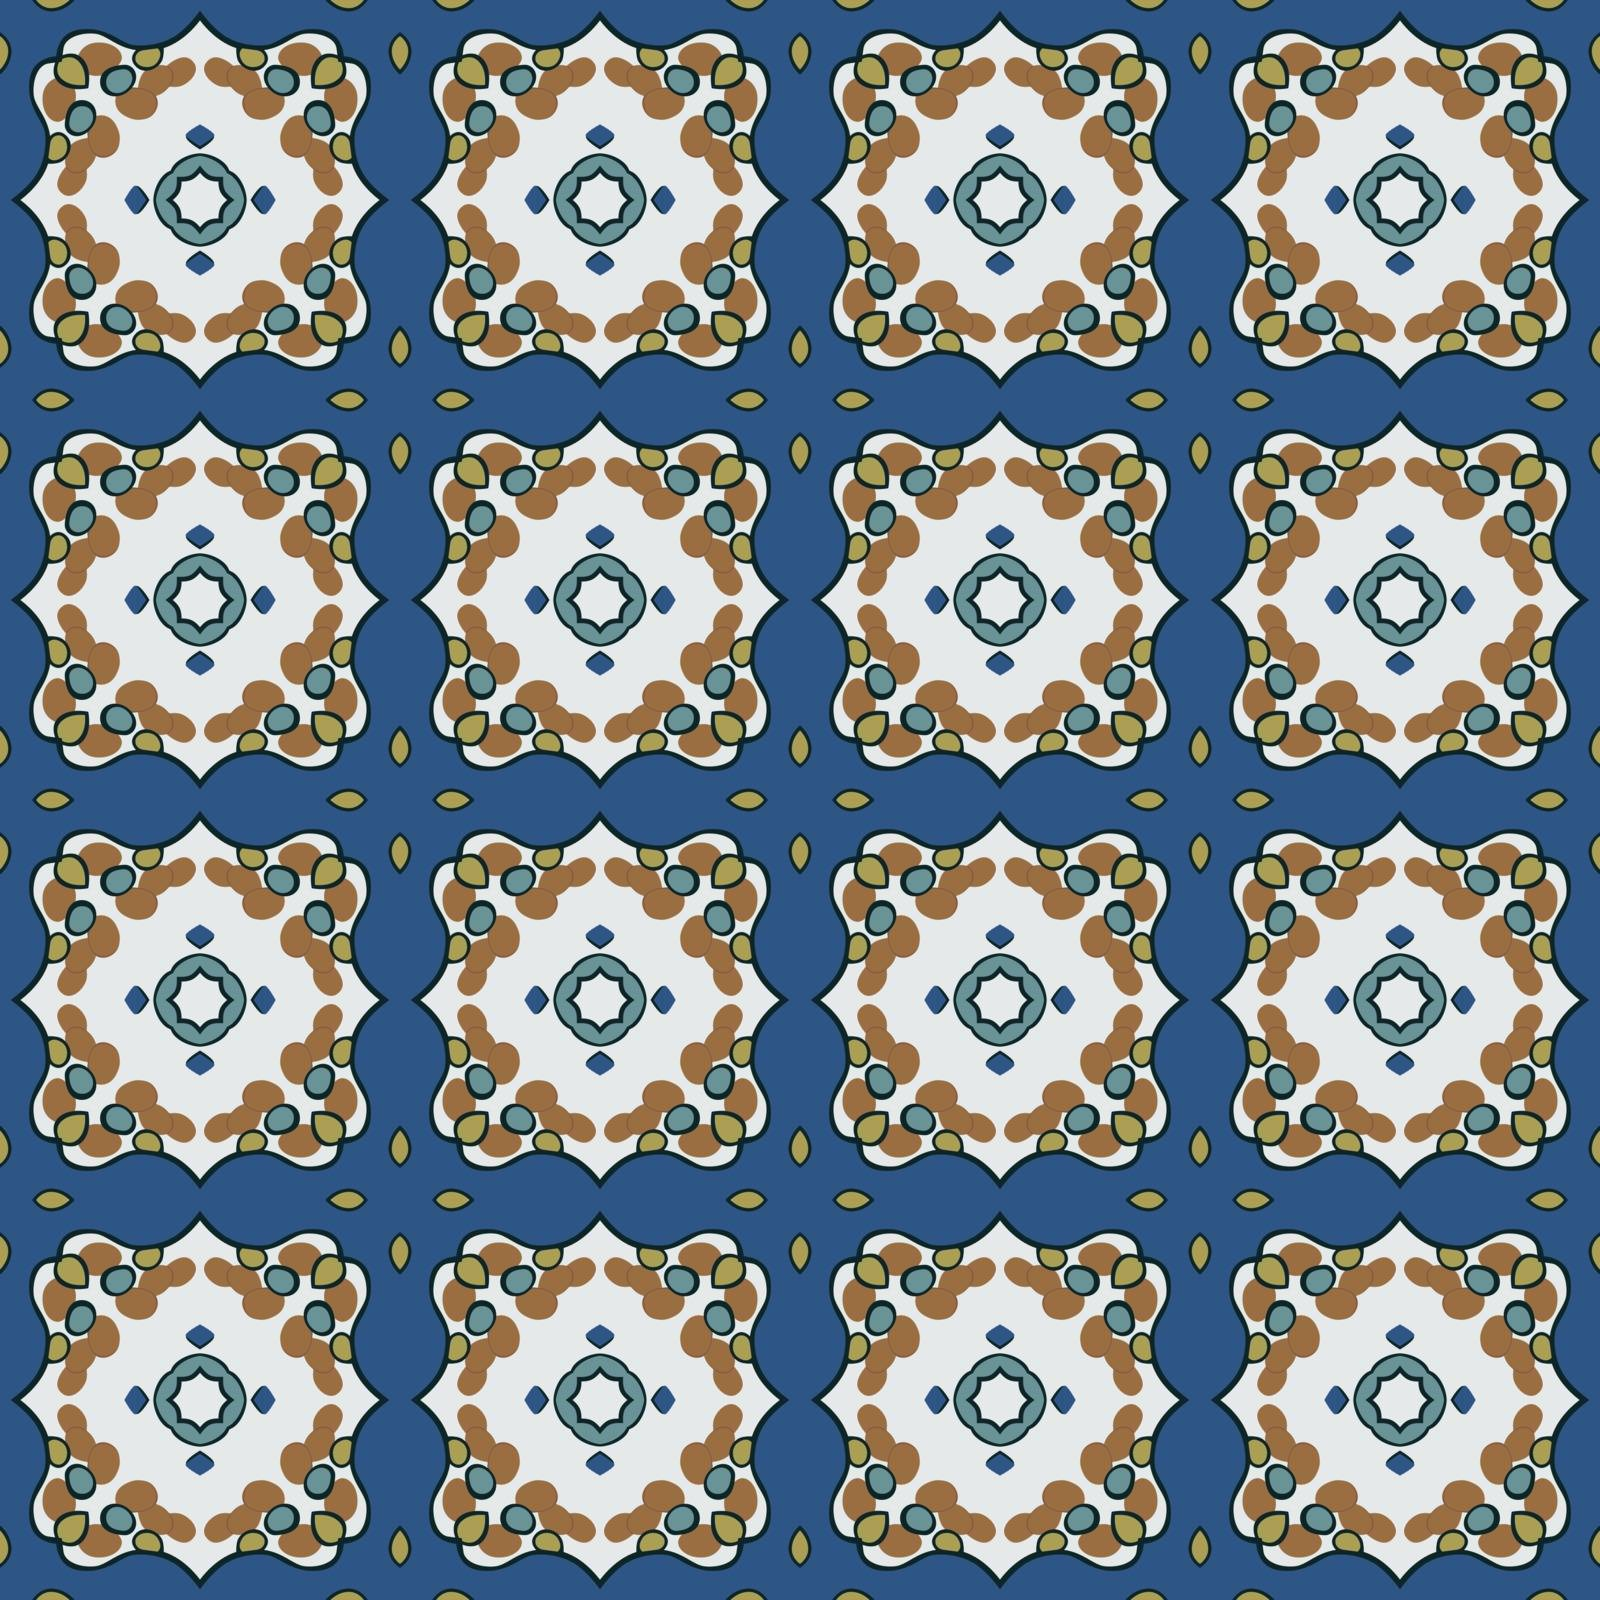 Seamless illustrated pattern made of abstract elements in white, yellow, turquoise, blue, brown and black